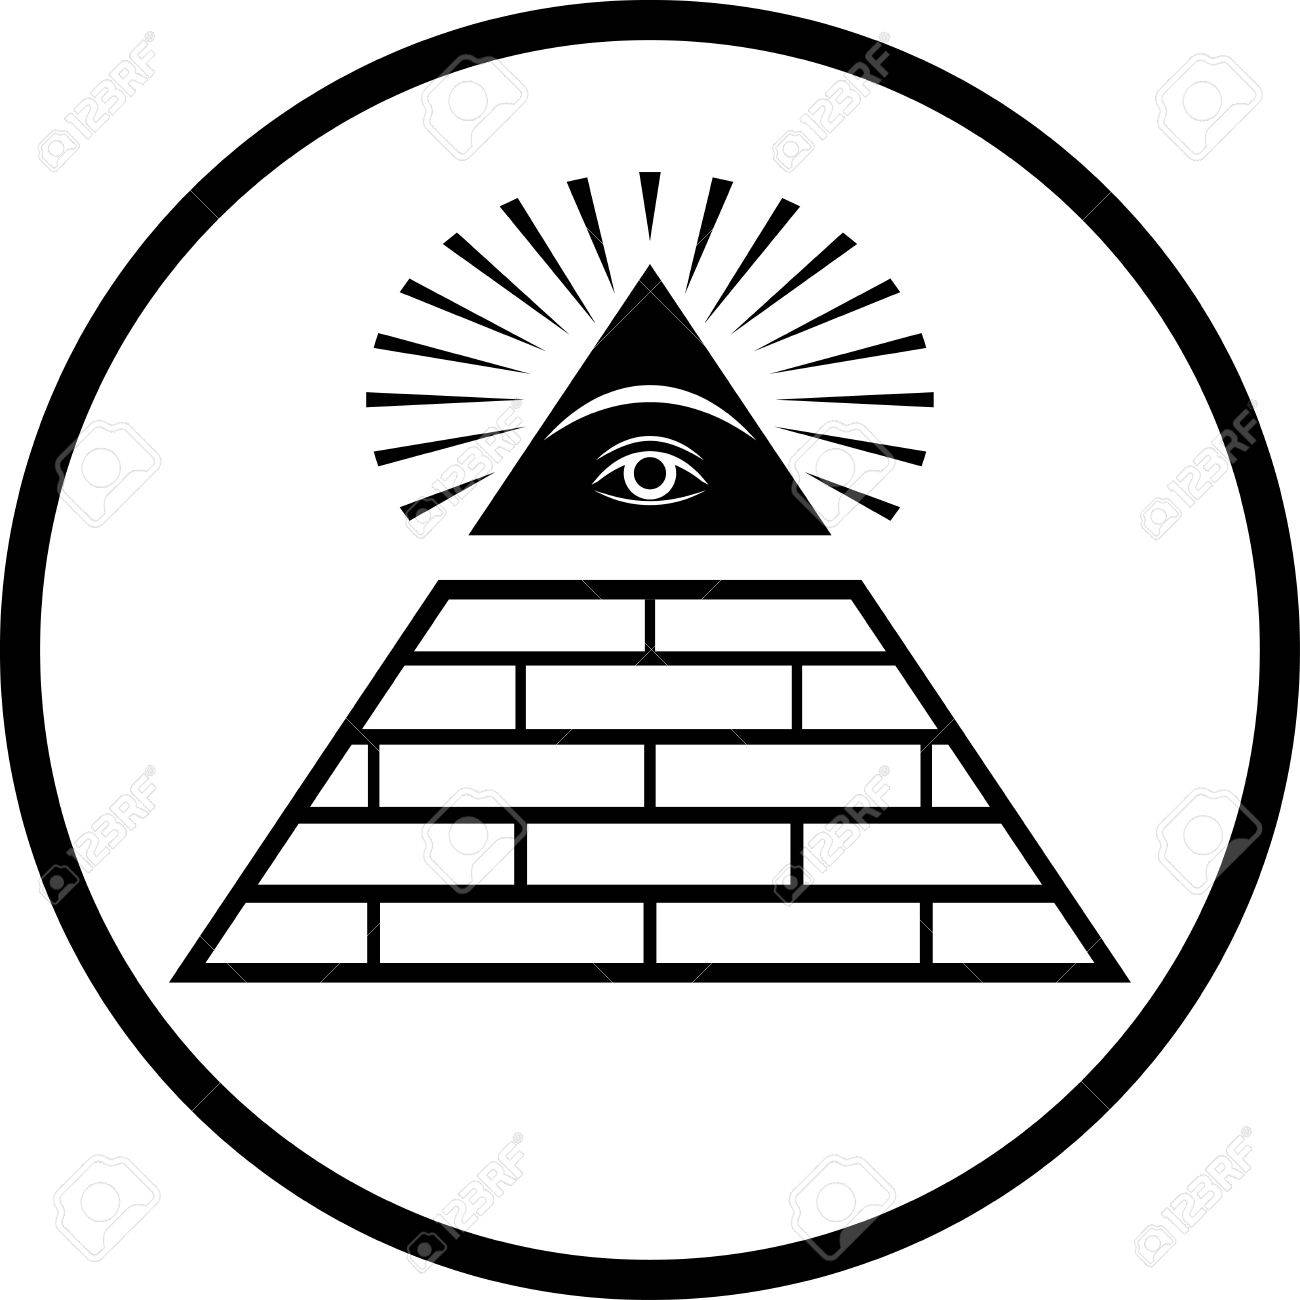 Illuminati Triangle Drawing At Getdrawings Free For Personal